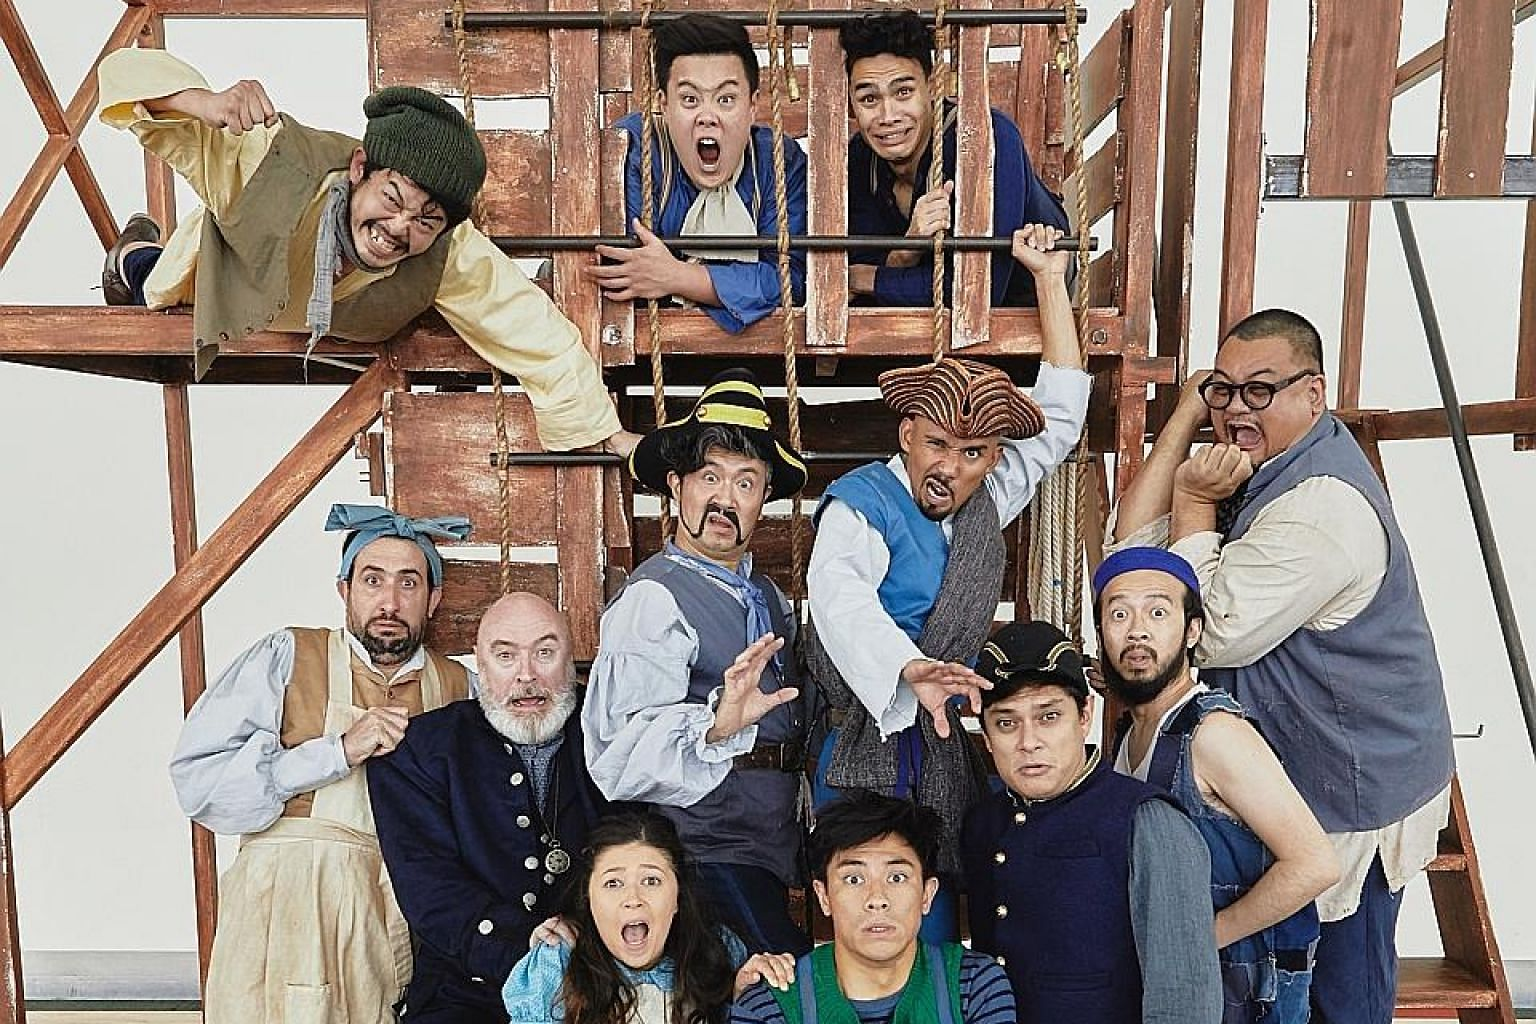 In Peter And The Starcatcher, the cast clambers up and down a set that resembles a challenging jungle gym.